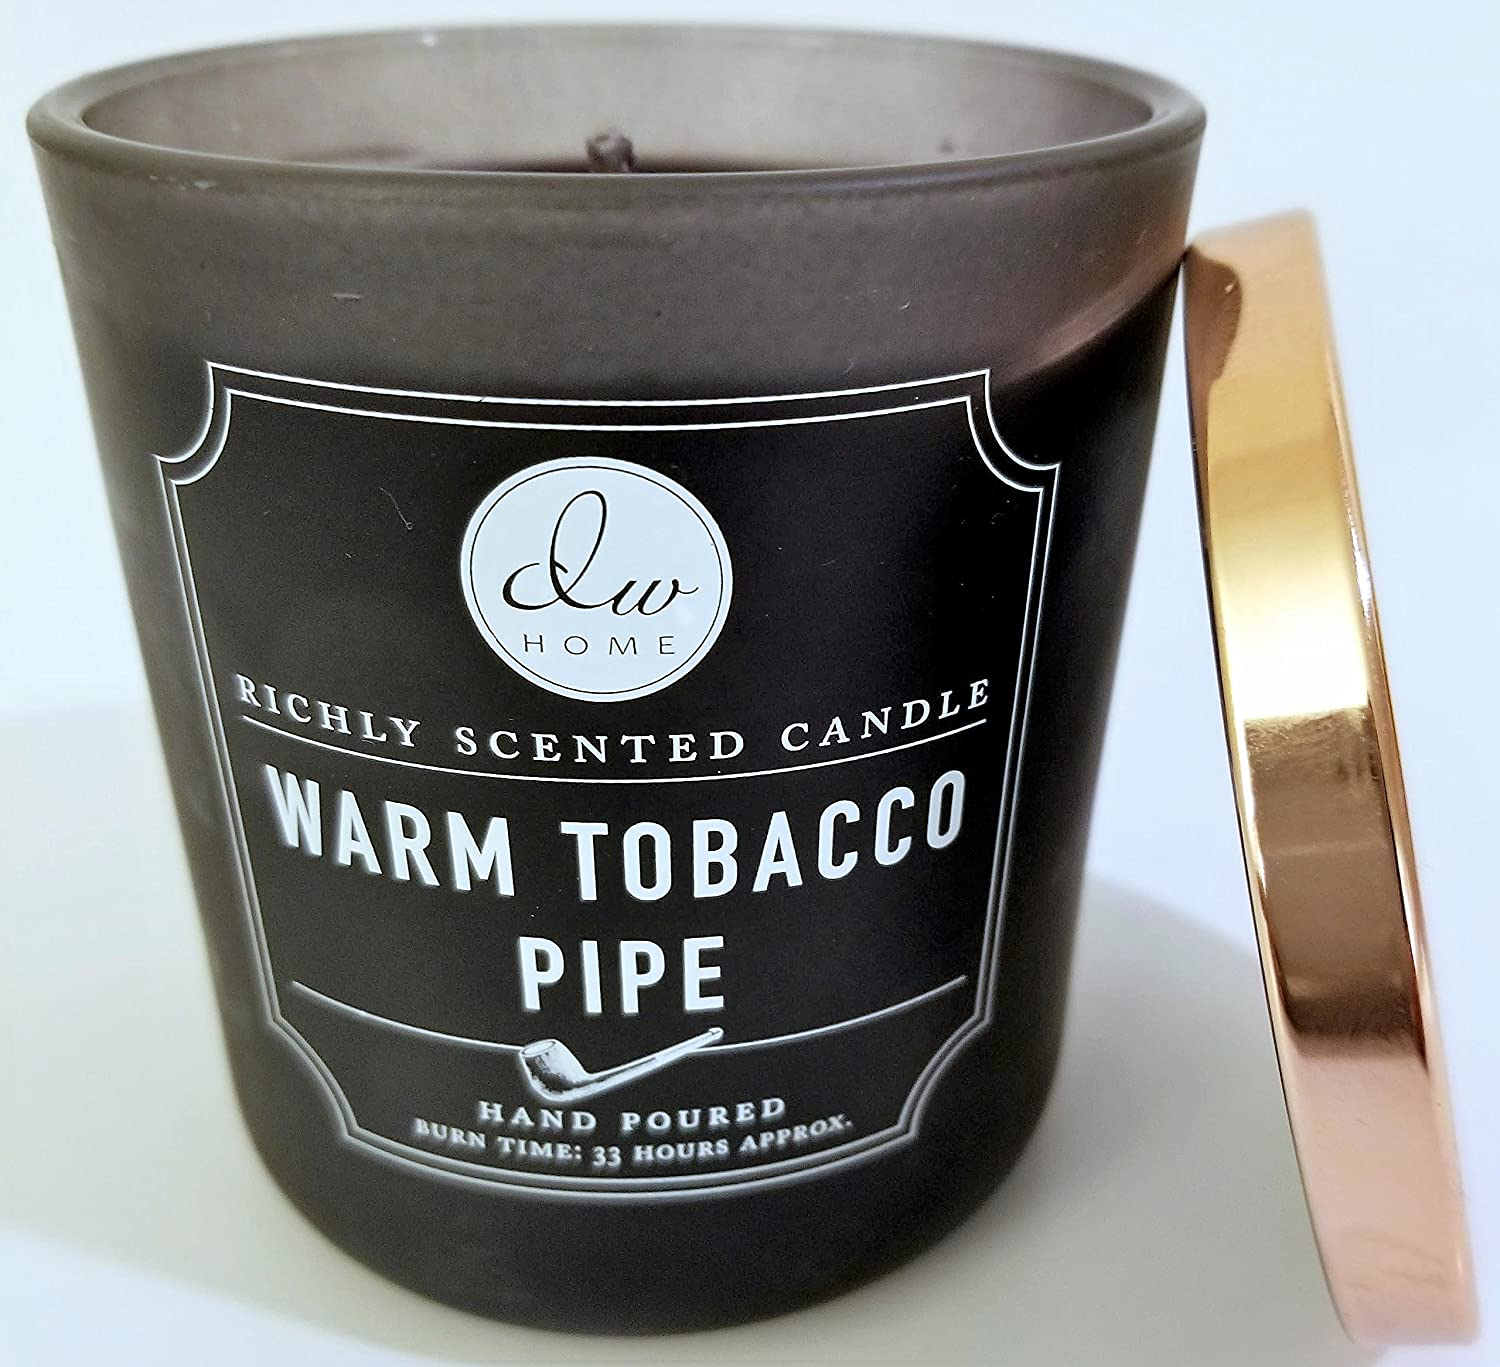 9.21 Oz. Medium Warm Tobacco Pipe Candle in Glass Jar With Copper Lid